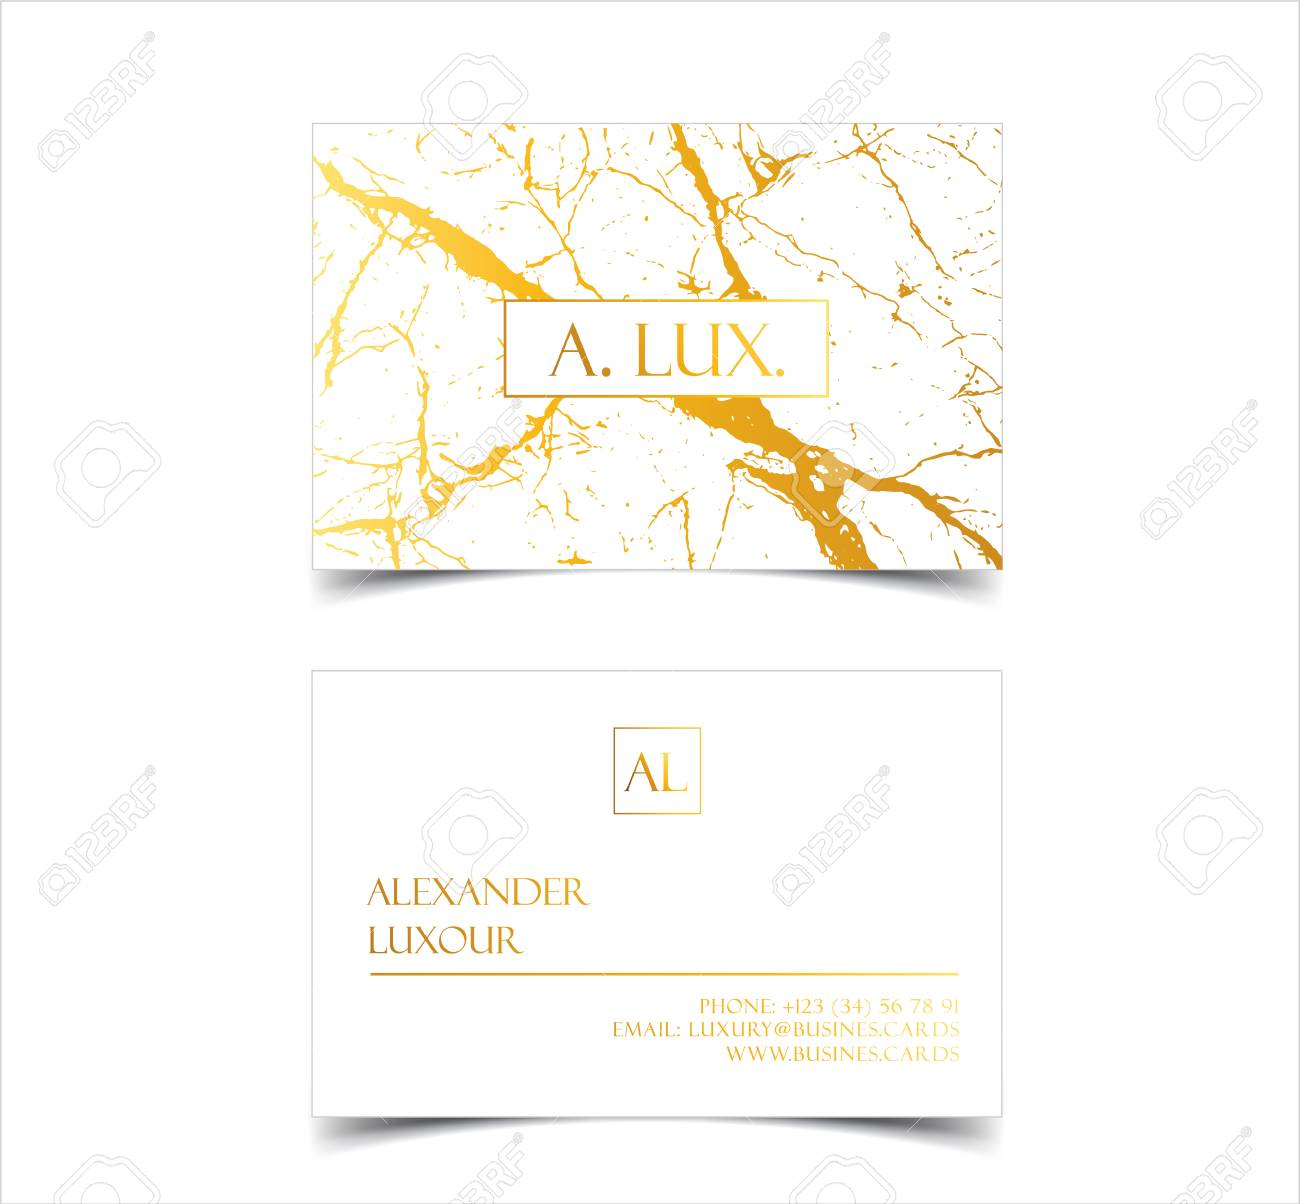 Elegant White Luxury Business Cards With Marble Texture And Gold ...